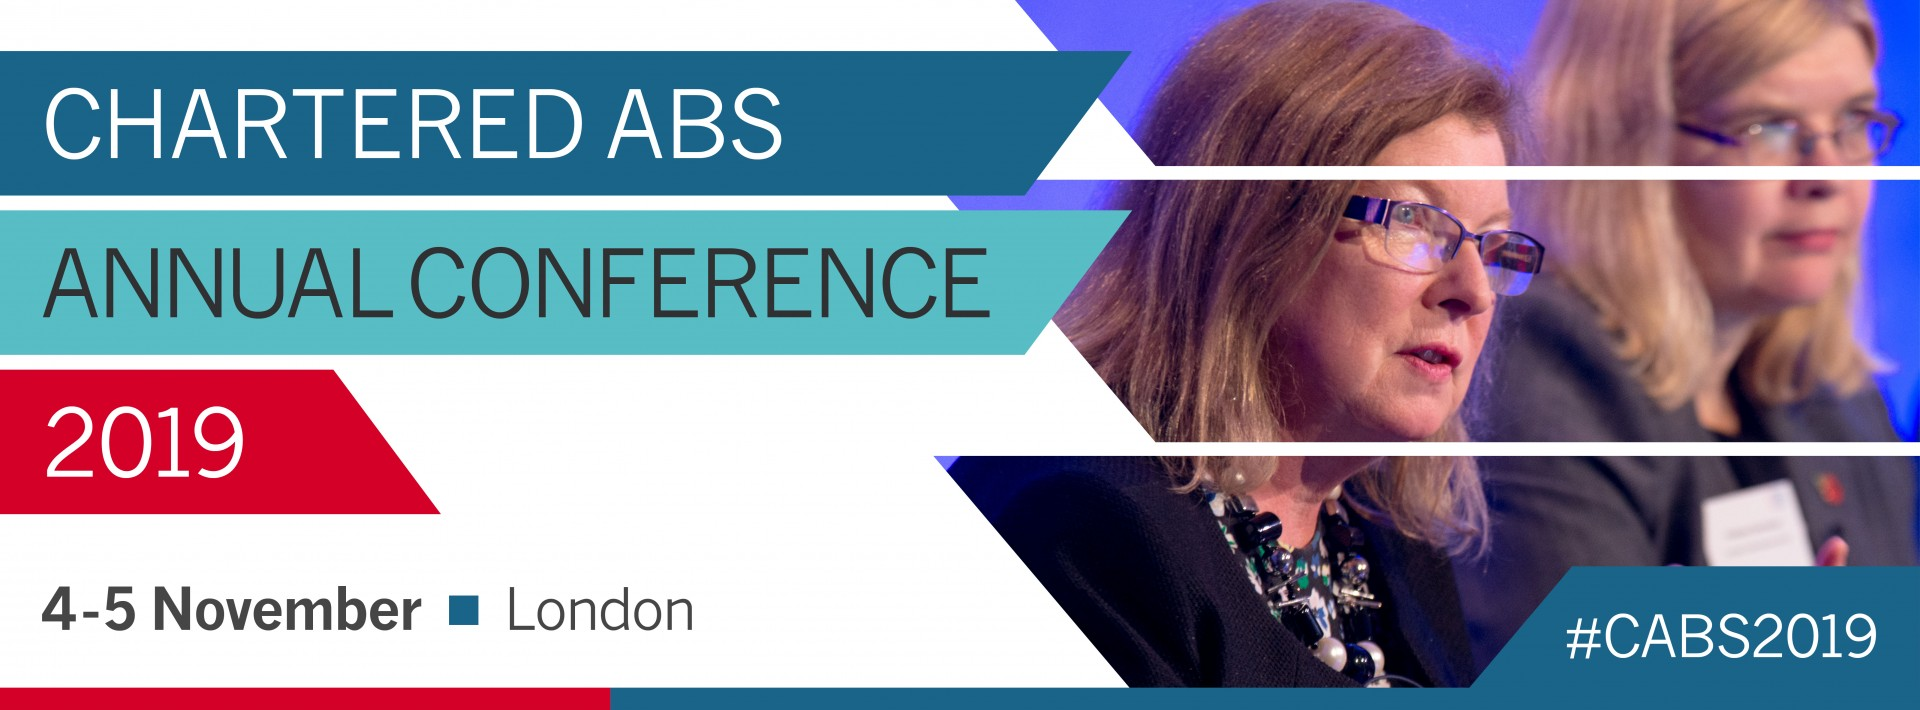 Chartered ABS Annual Conference 2019